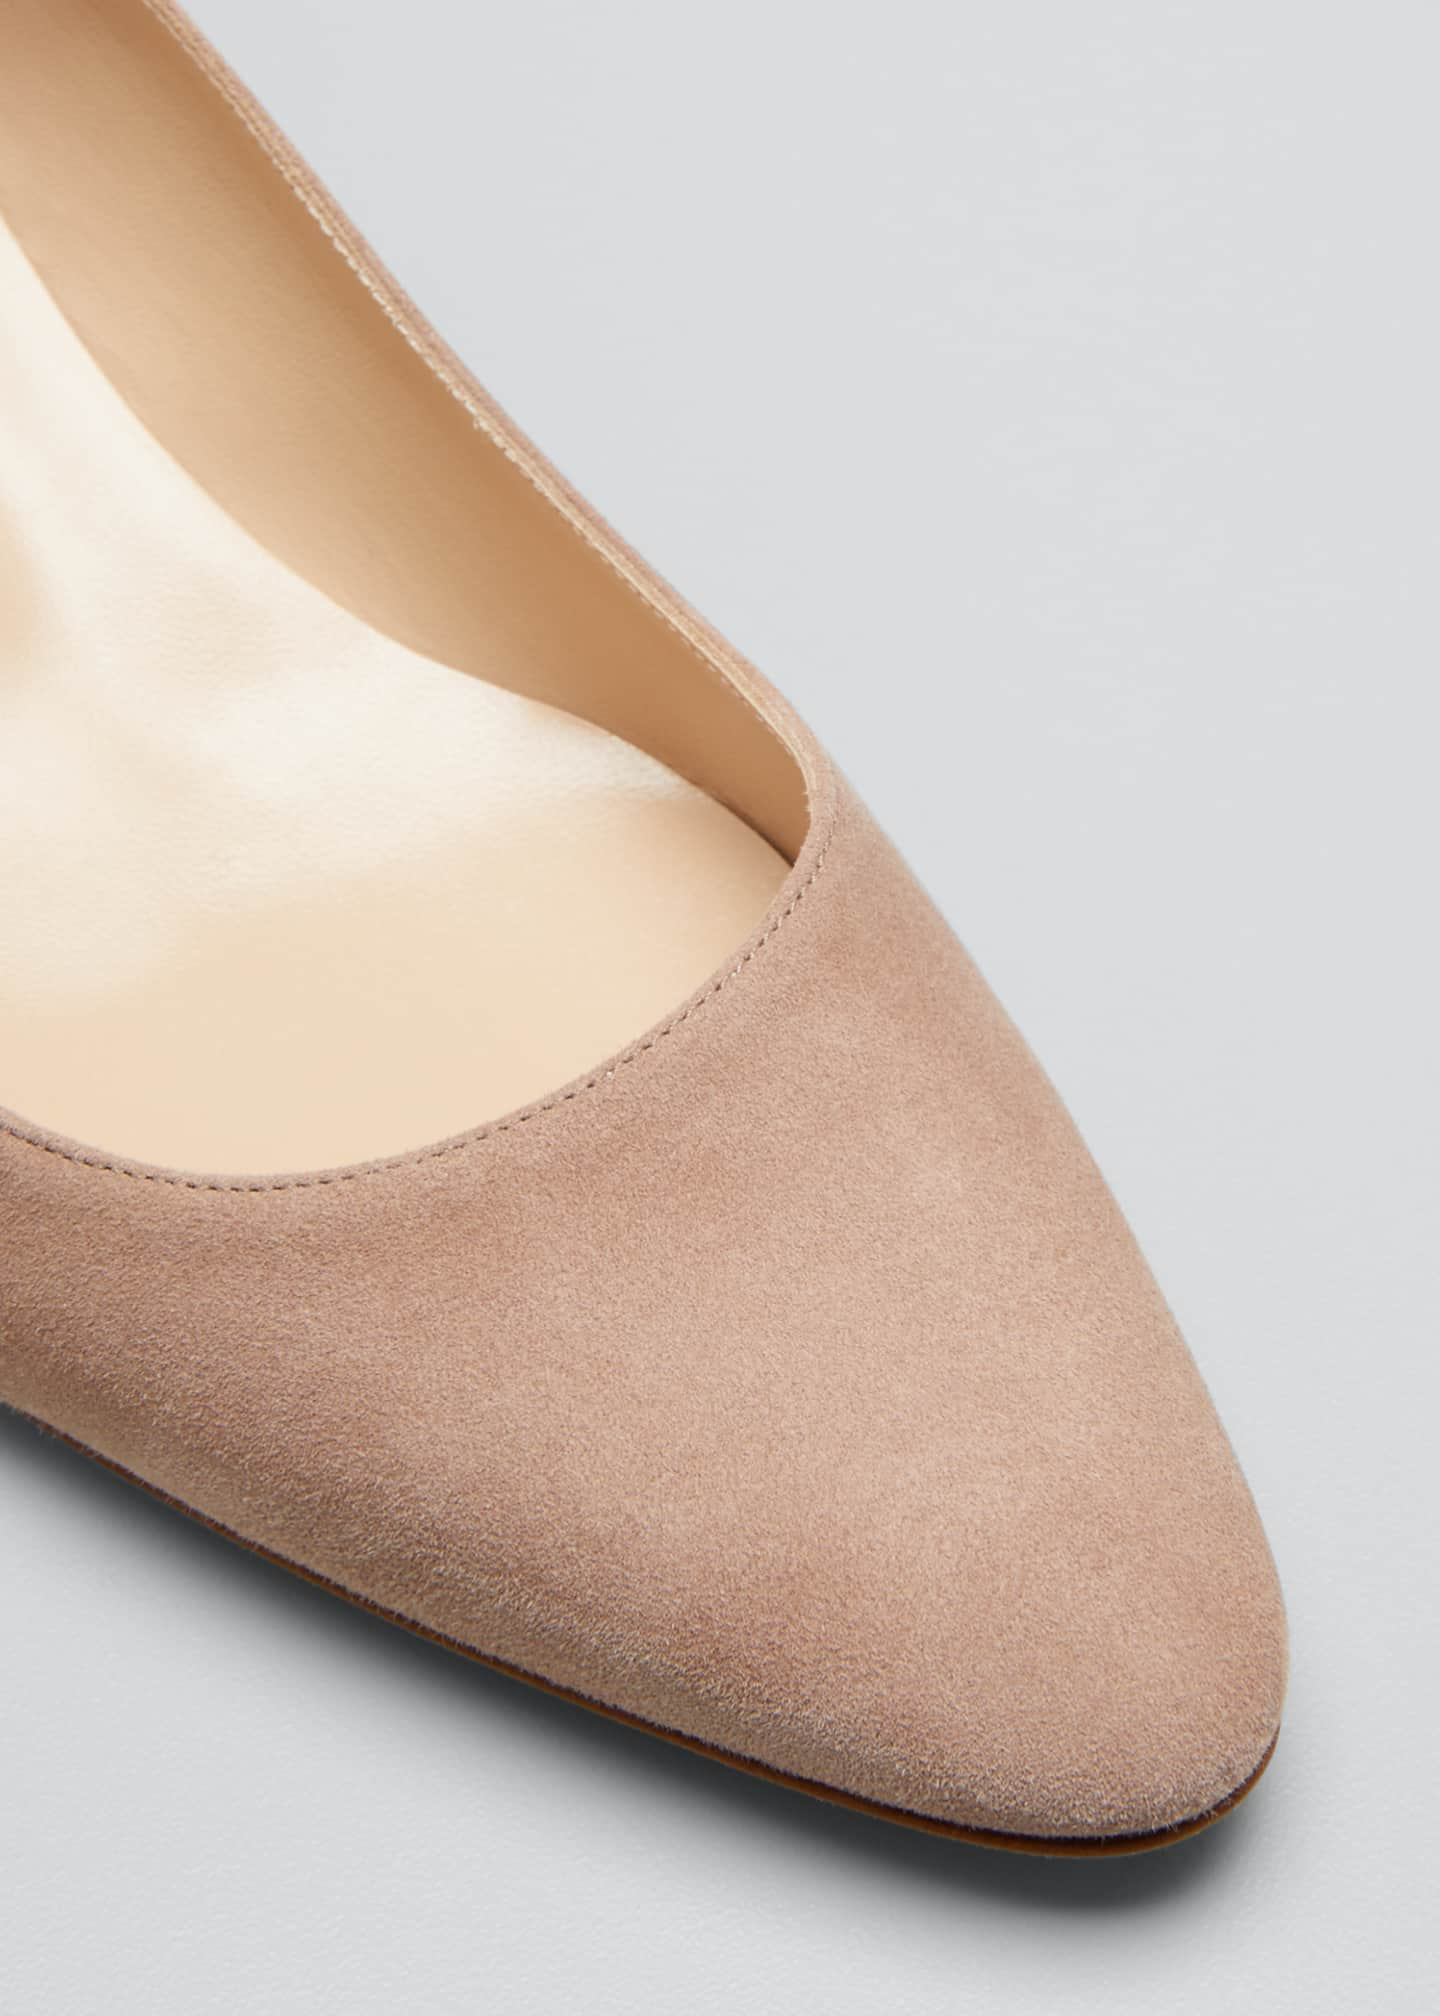 Image 5 of 5: Listony Suede Low-Heel Pumps